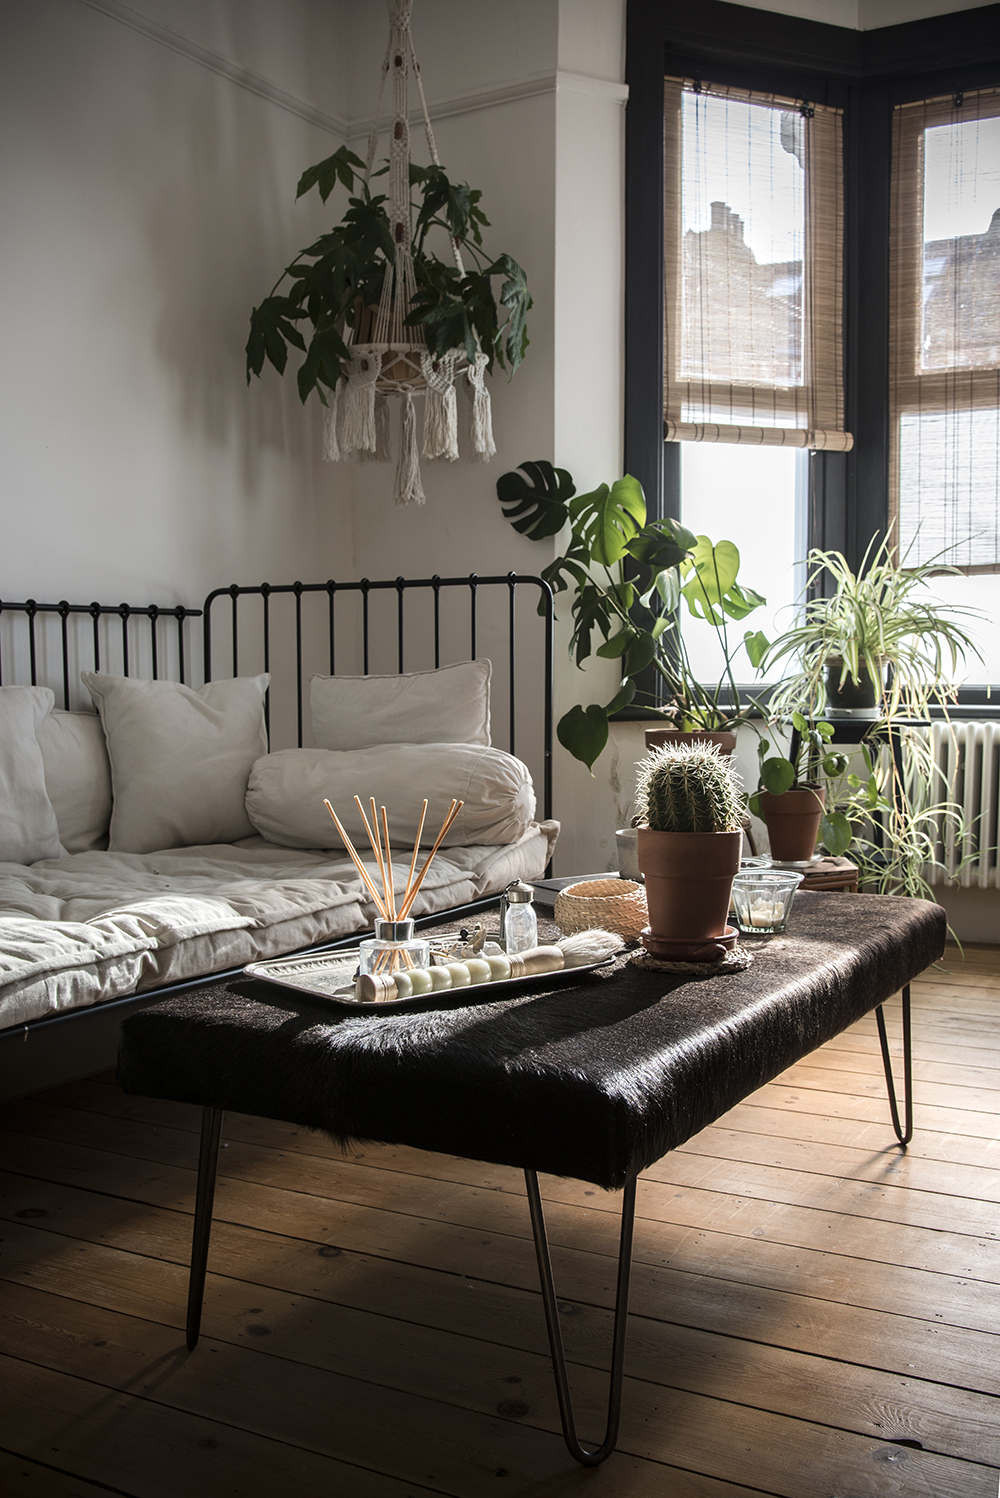 stylist design house plant seeds. Creating the perfect indoor garden space is all about how you show off your  plants in best light That why I love this hanging which brings a splash Indoor create own